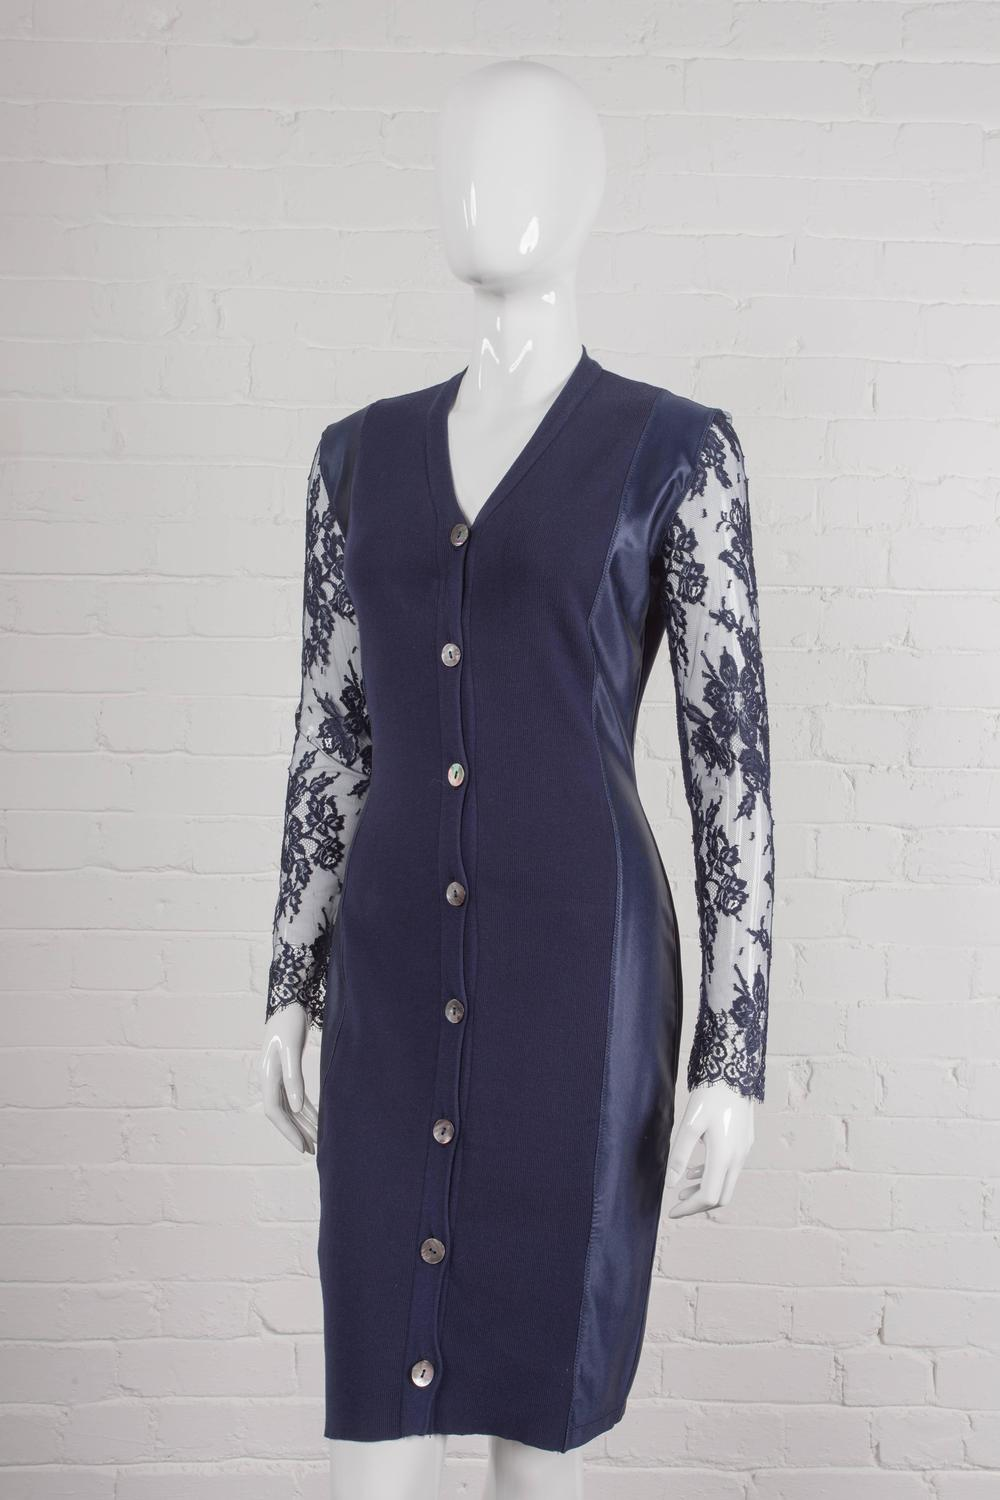 1988 89 boarding schools lace sleeve dress for sale at for House of liza